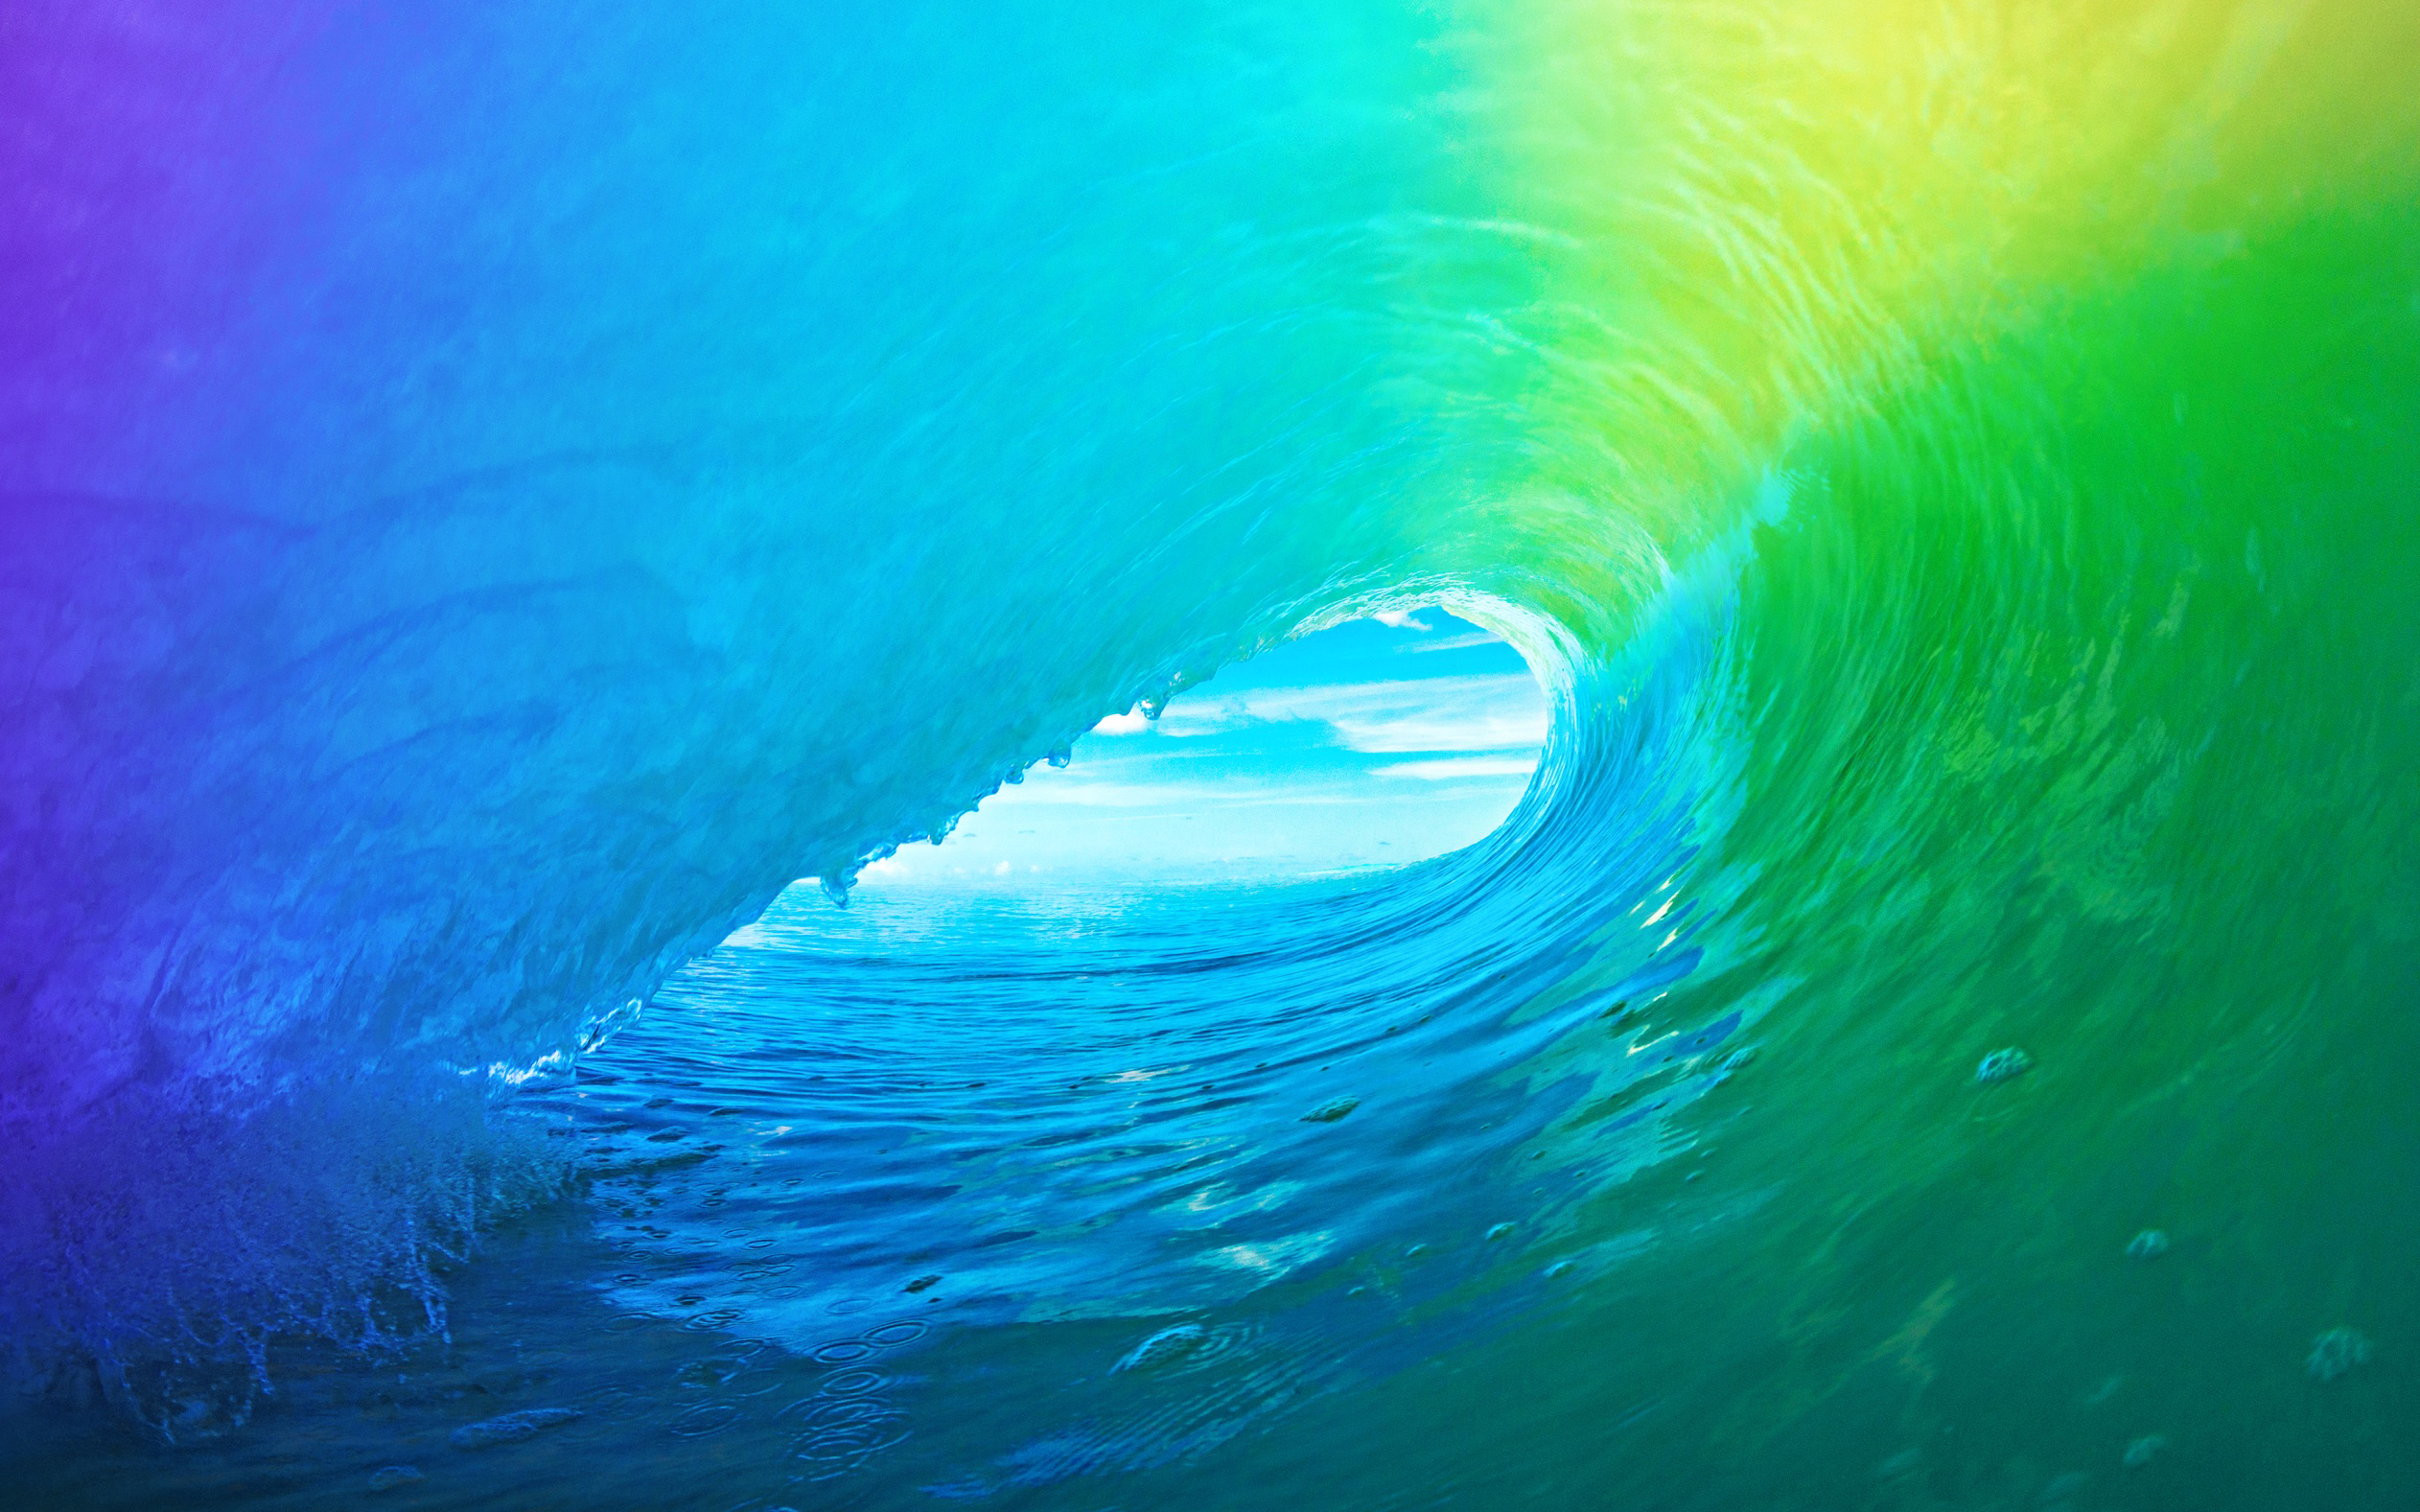 download the colored wave default ios 9 wallpaper | iphonetricks